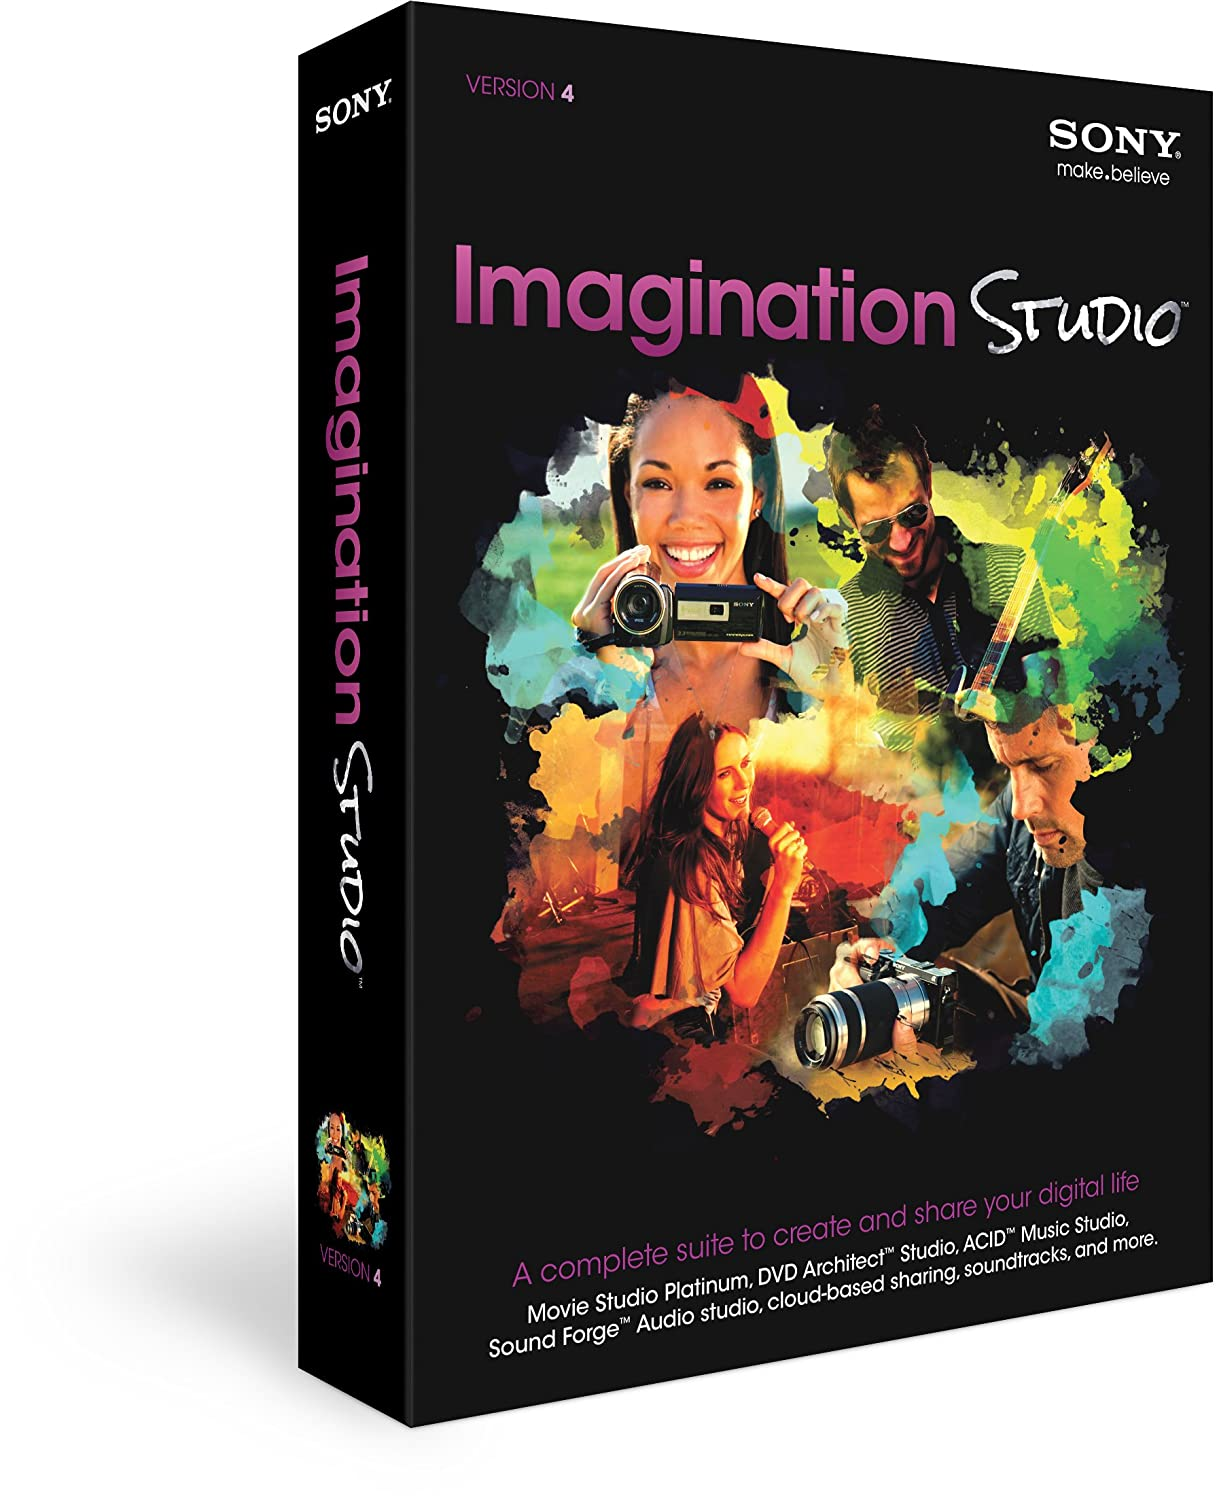 Sony Imagination Studio 4